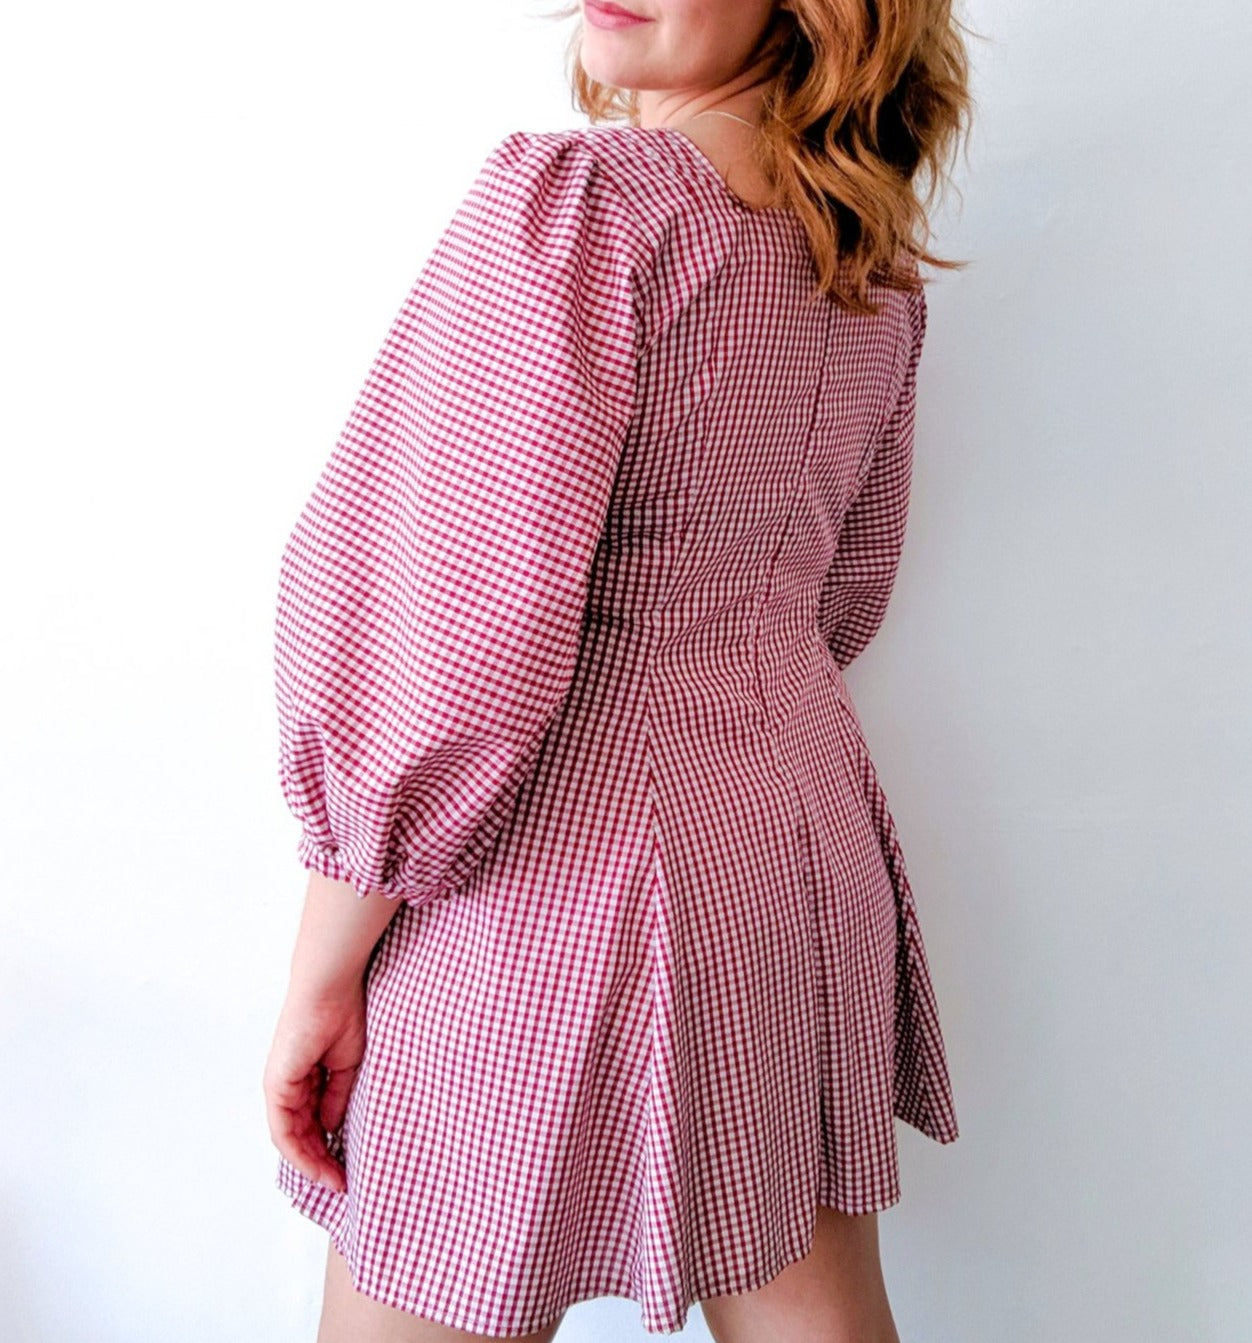 Ethical red and white check gingham milkmaid mini dress